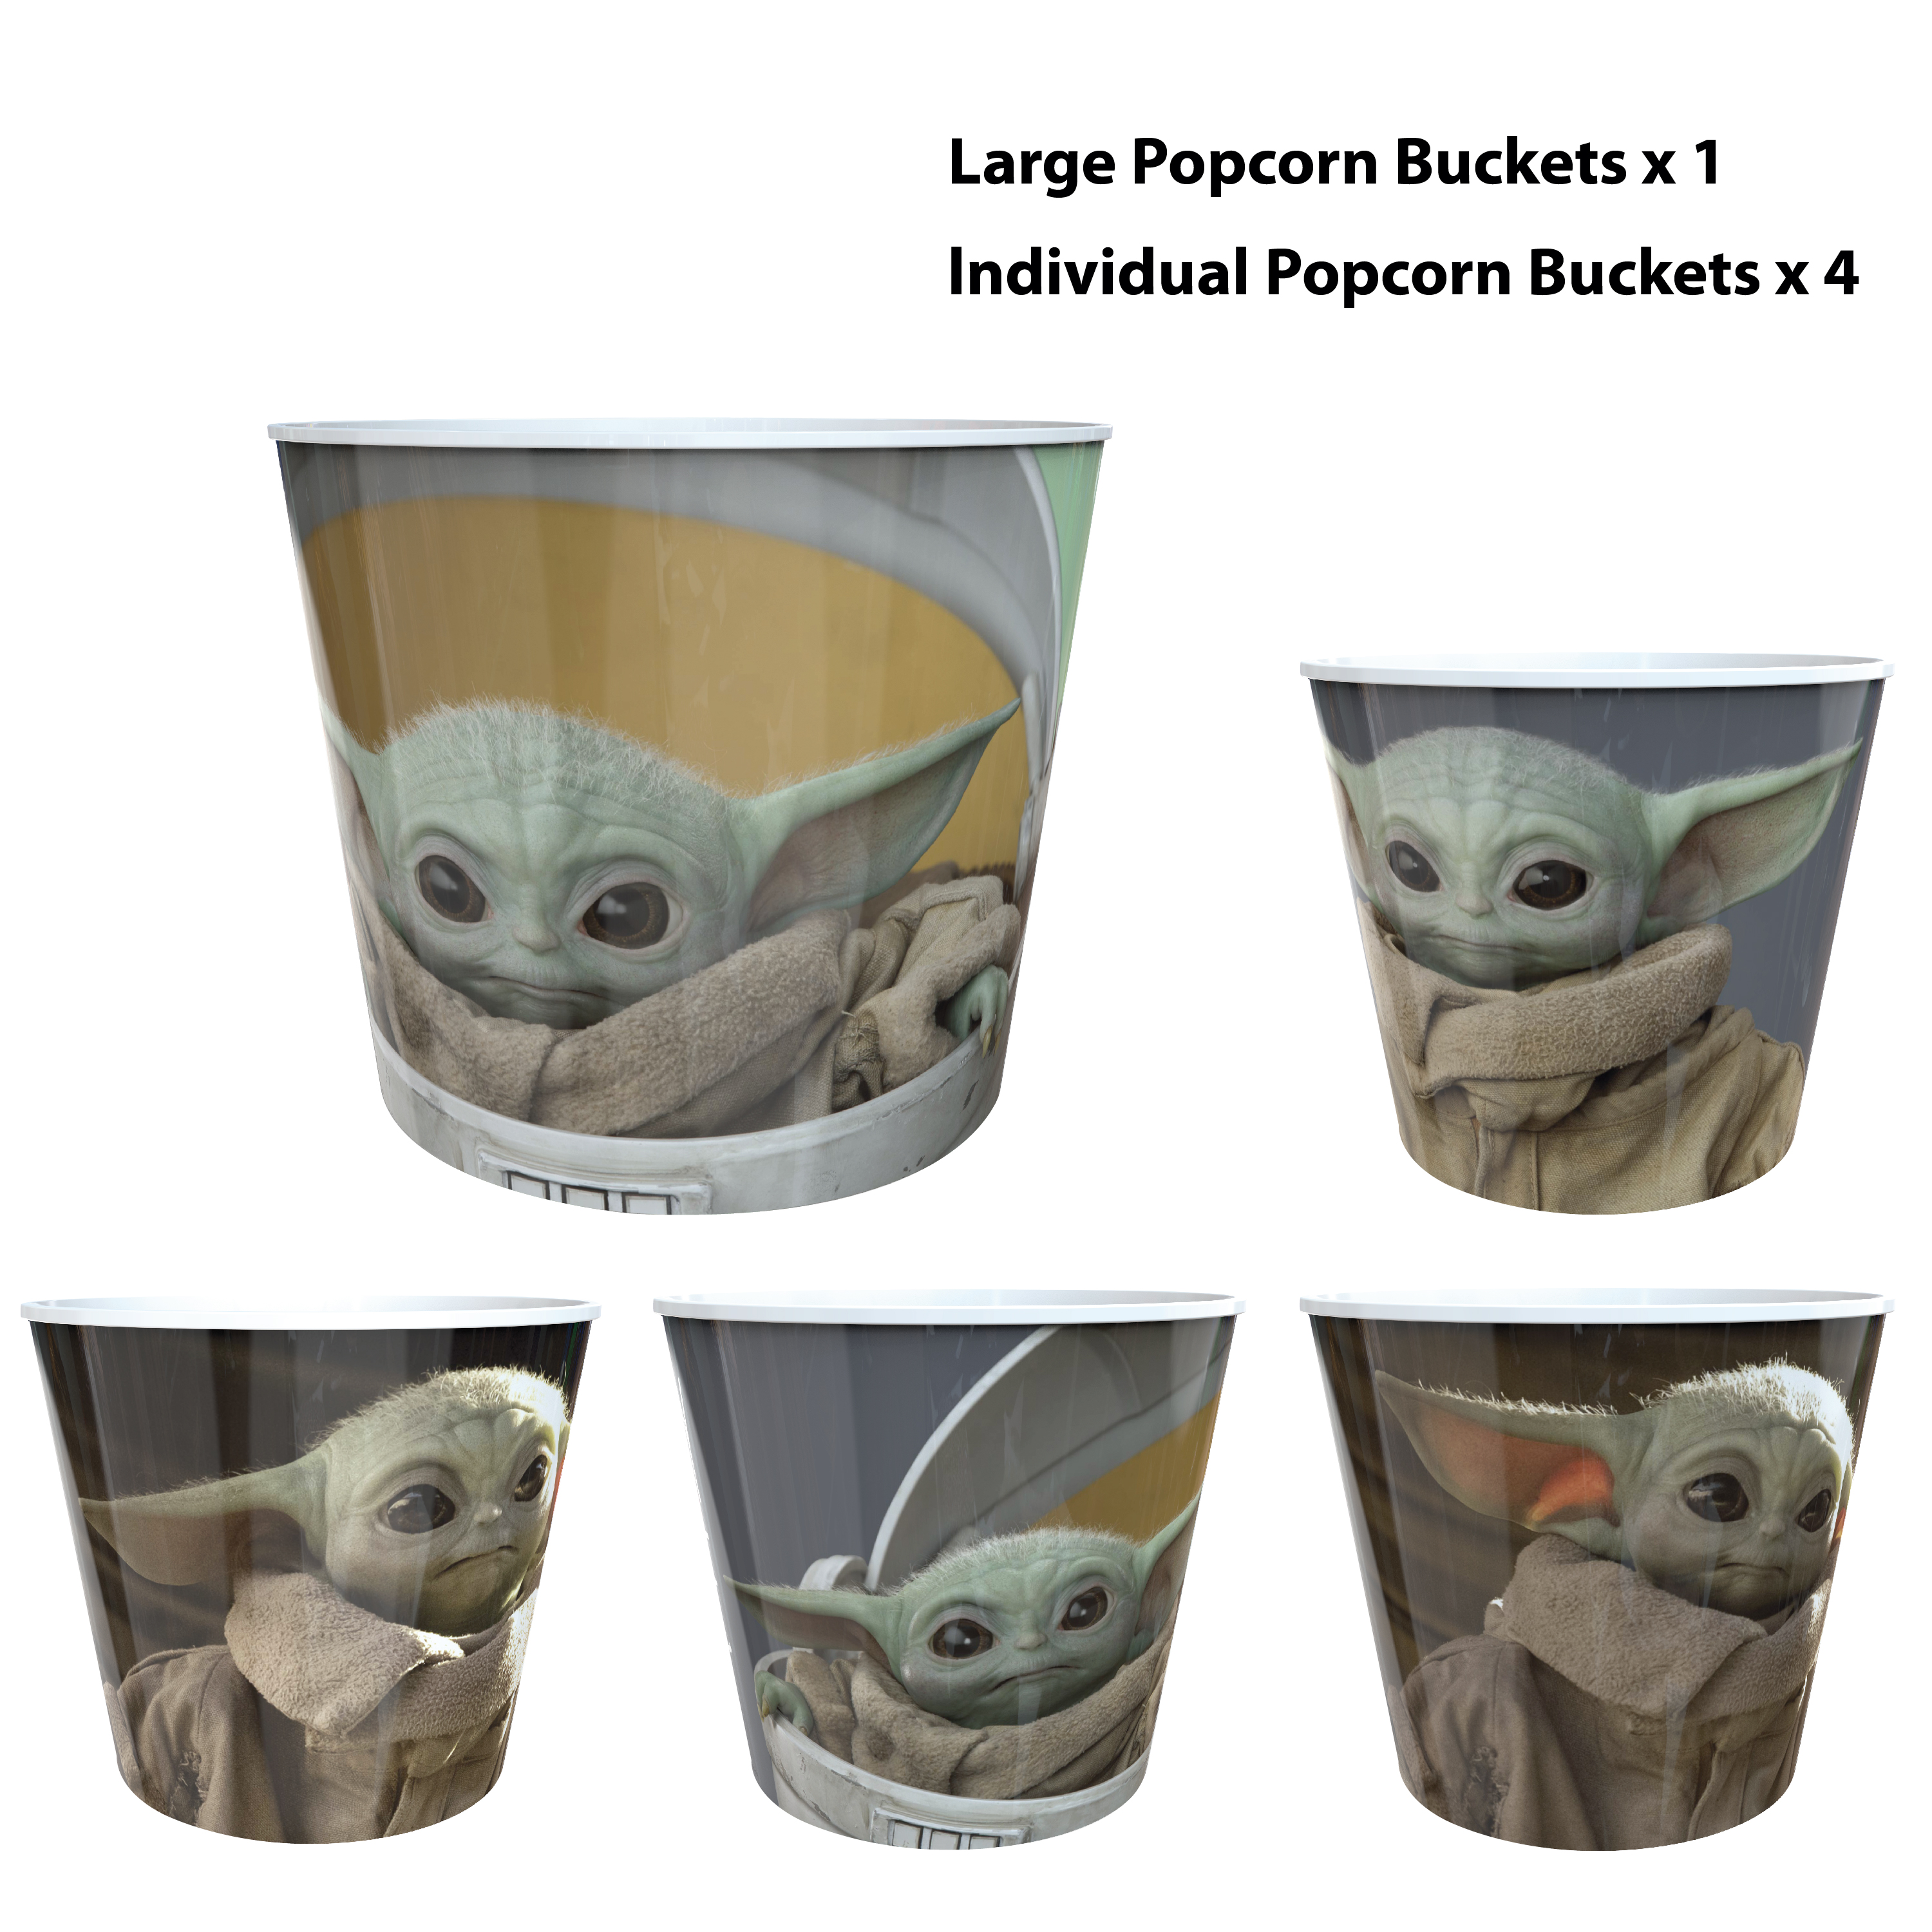 Star Wars: The Mandalorian Plastic Popcorn Container and Bowls, The Child (Baby Yoda), 5-piece set slideshow image 11